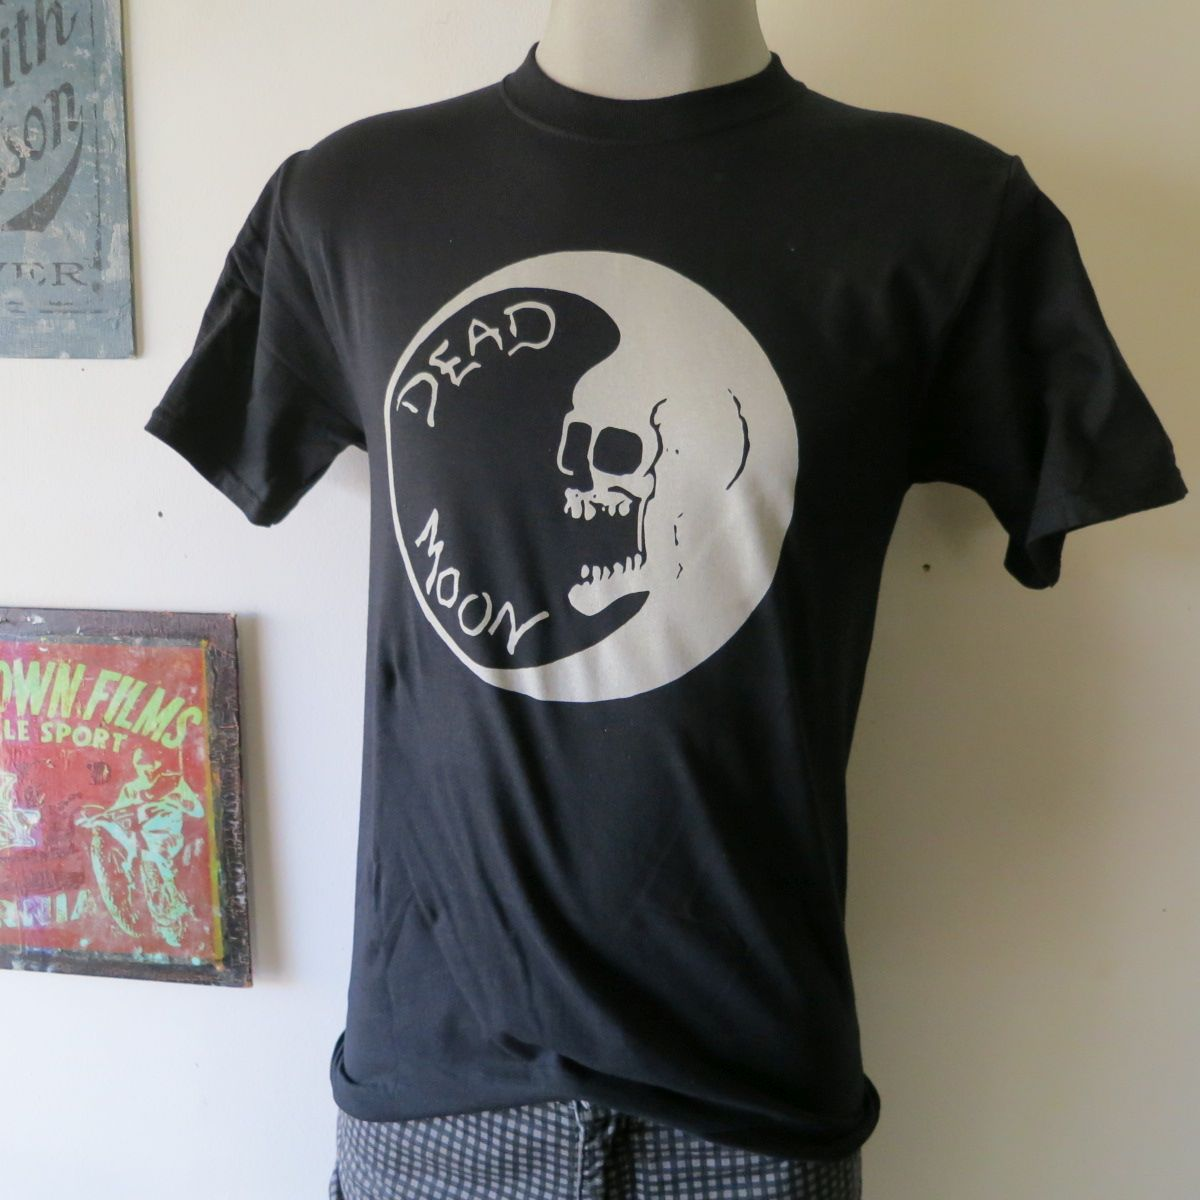 Dead moon tee t shirt screen print short sleeve black for Vintage screen print t shirts